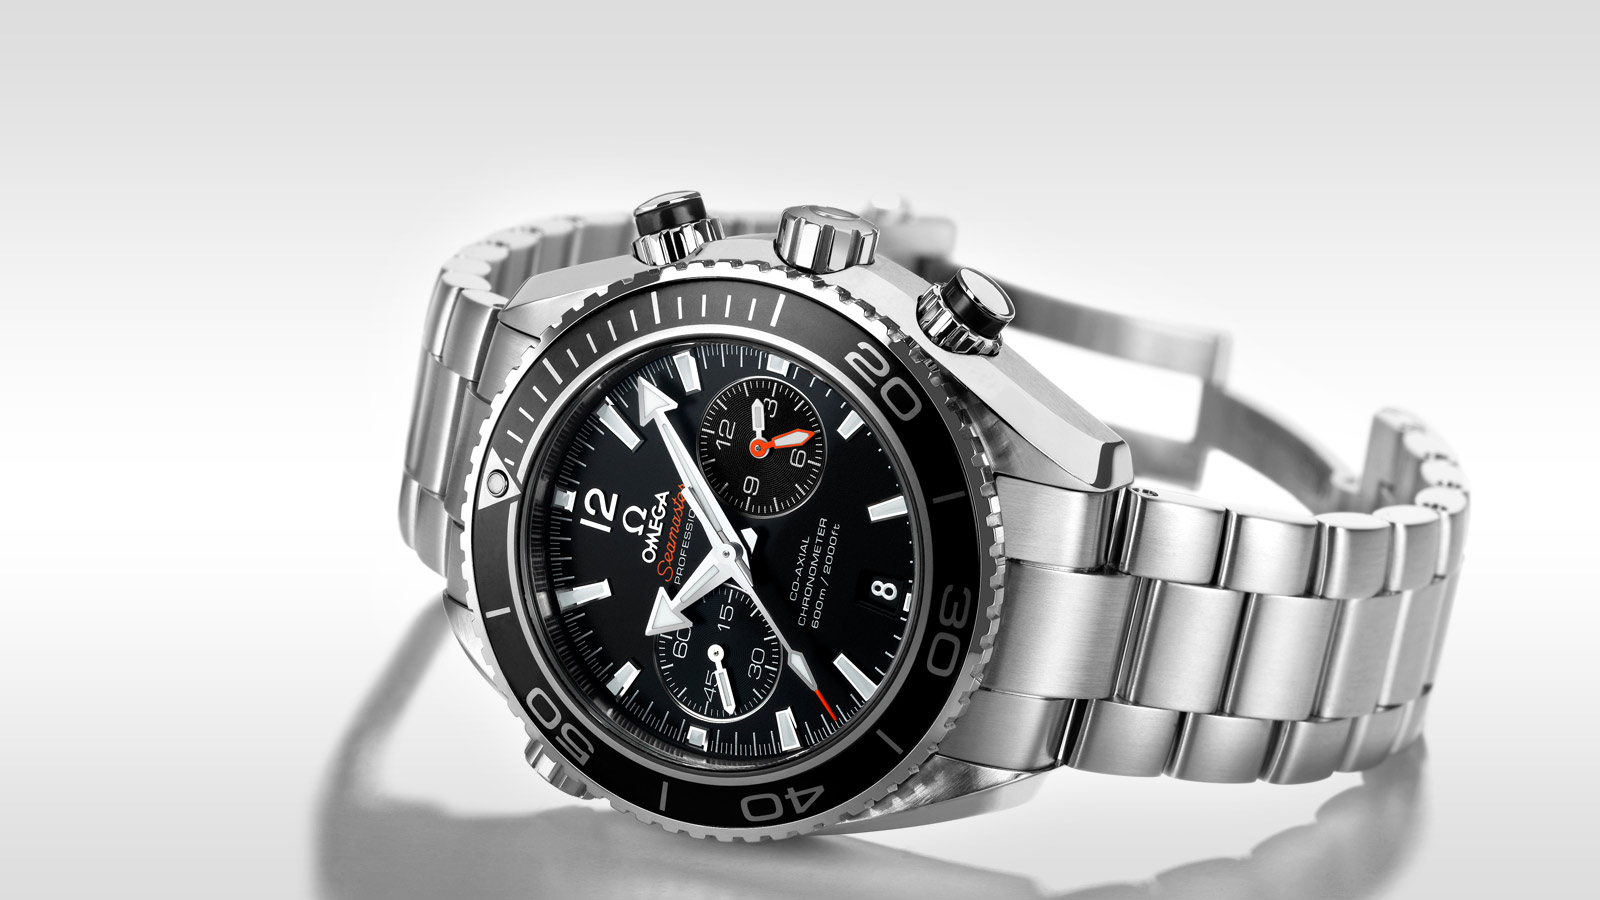 Seamaster プラネットオーシャン Planet Ocean 600M Omega Co‑Axial Chronograph 45.5 mm - 232.30.46.51.01.001 - ビュー 1